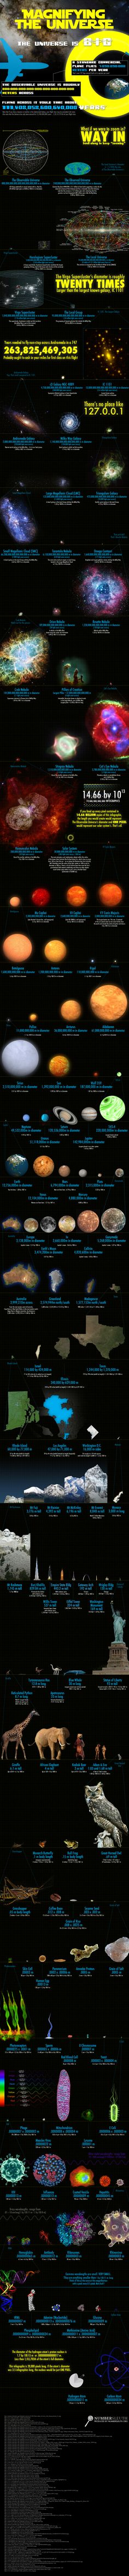 Magnifying the Universe! Great poster!